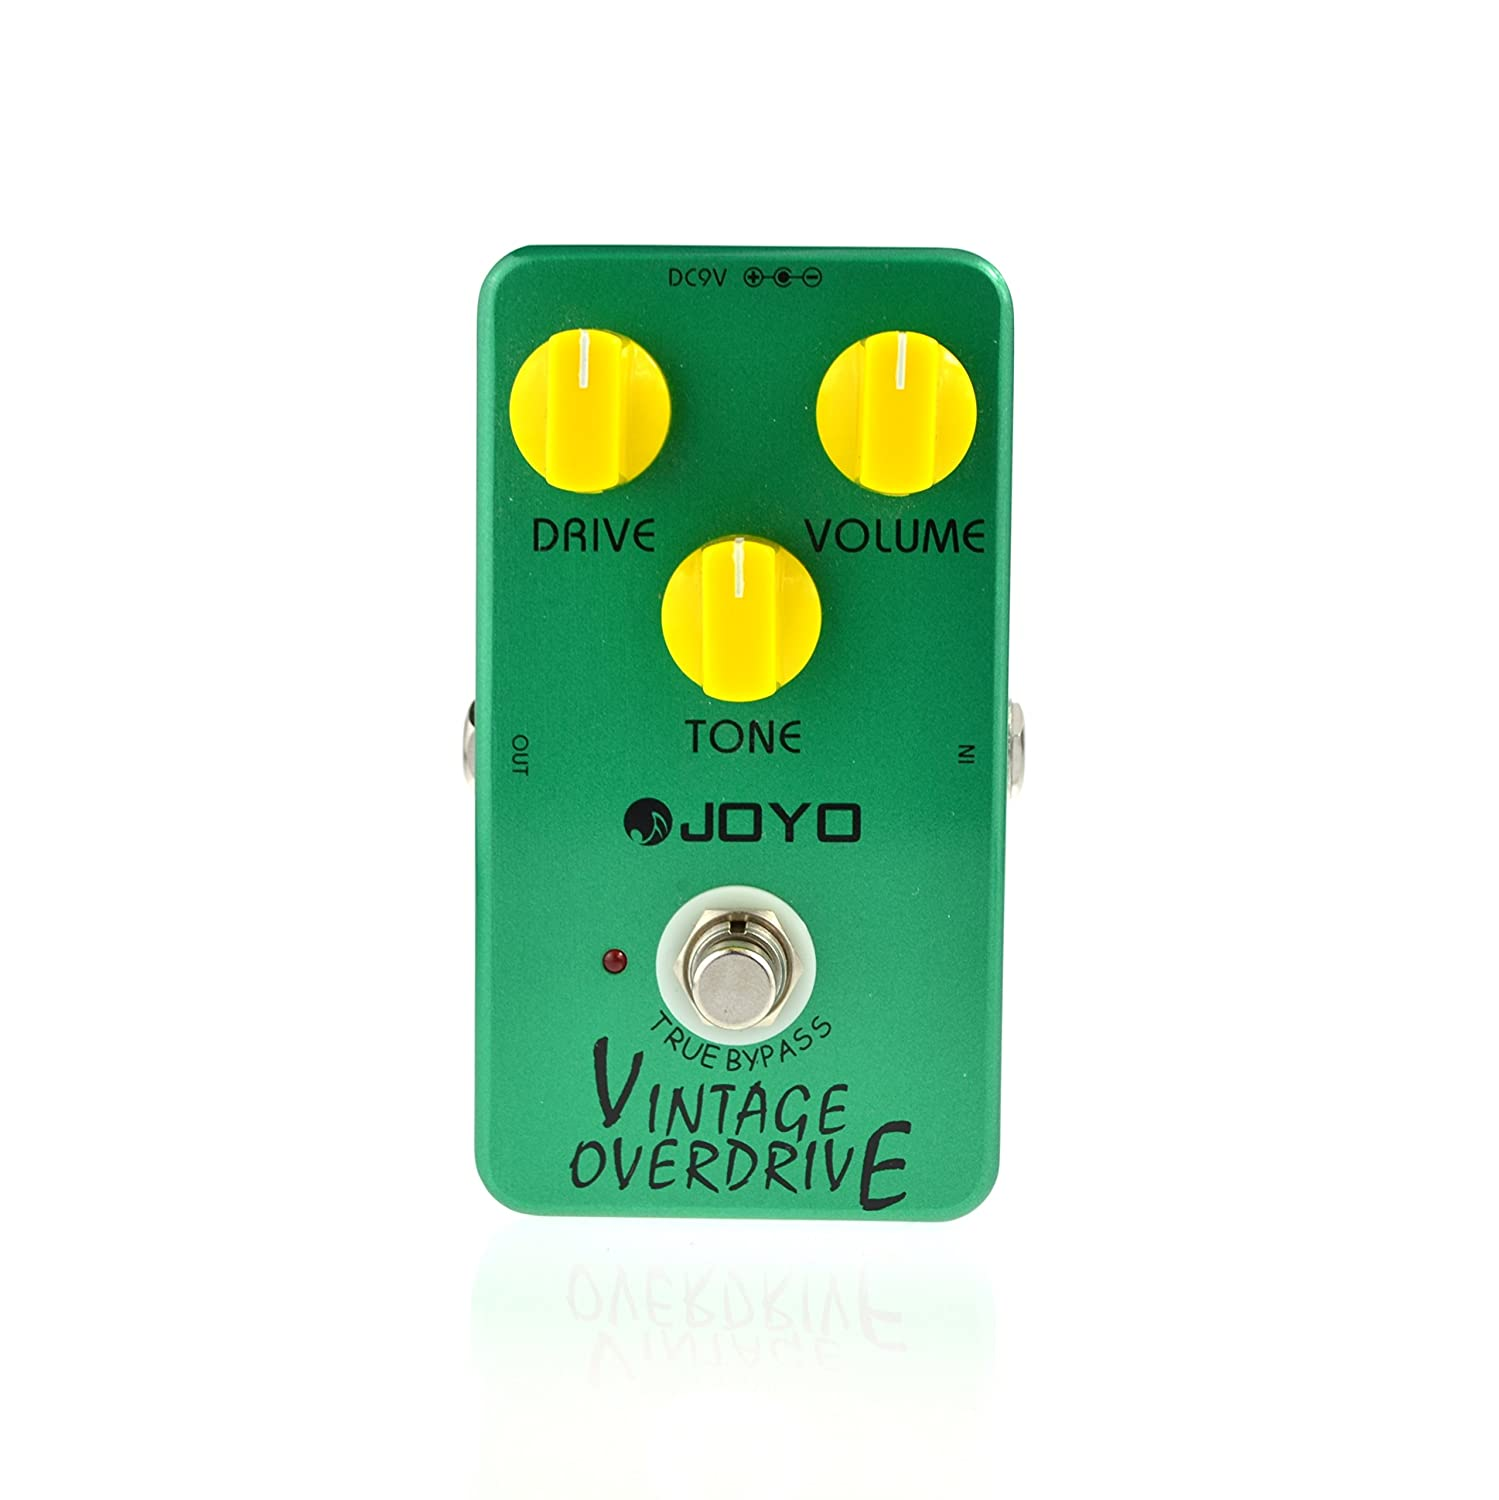 joyo jf 01 vintage overdrive guitar effect pedal with